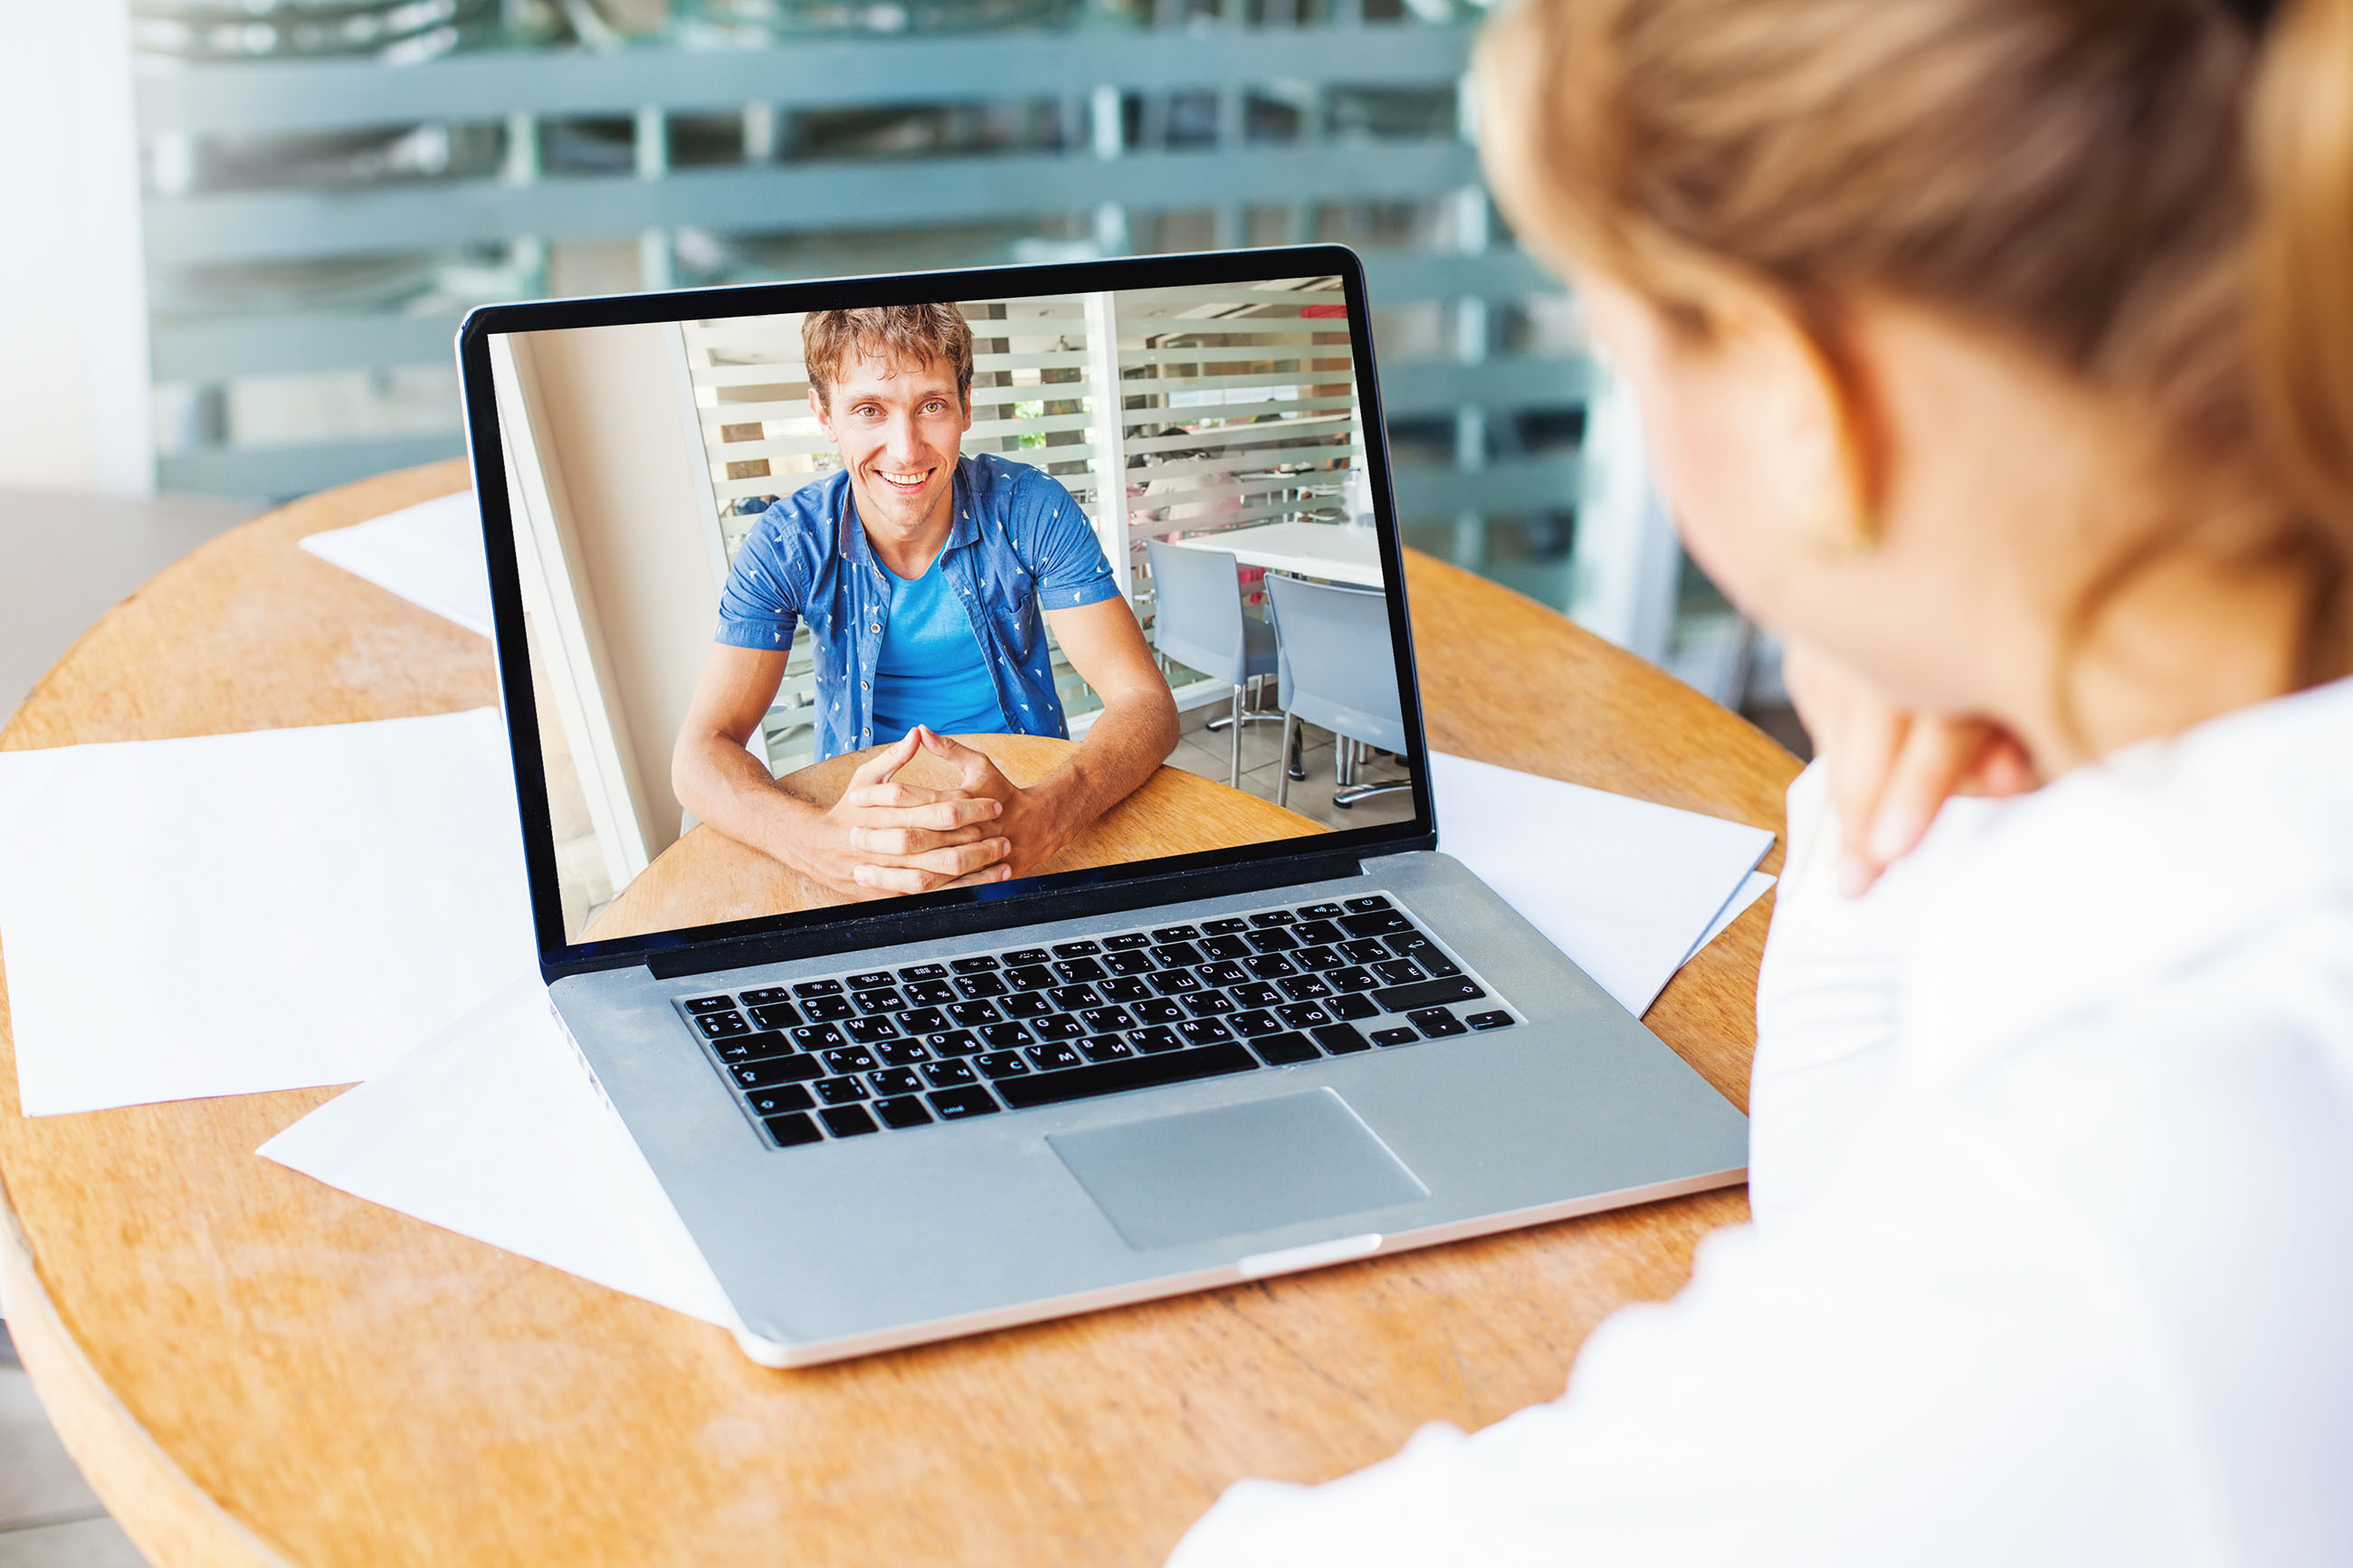 video call. woman and man talking on web camera in office; Shutterstock ID 352947272